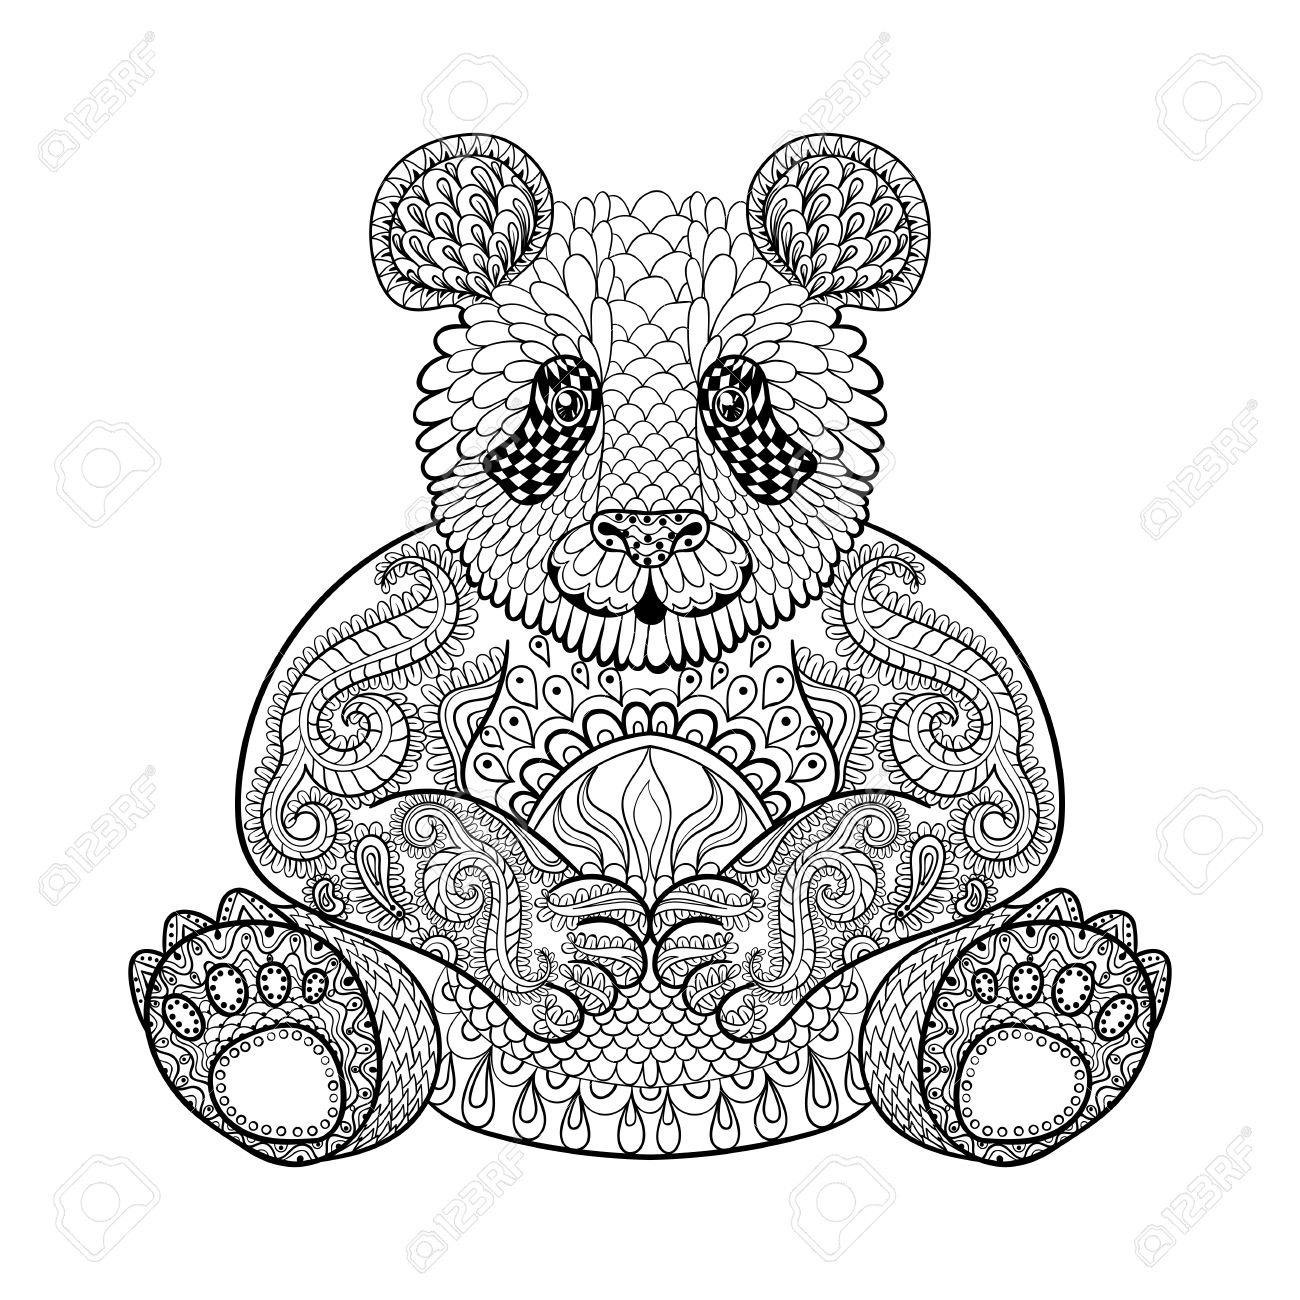 Dibujado A Mano Panda Tribal, Tótem Animal Adulto Para Colorear En ...